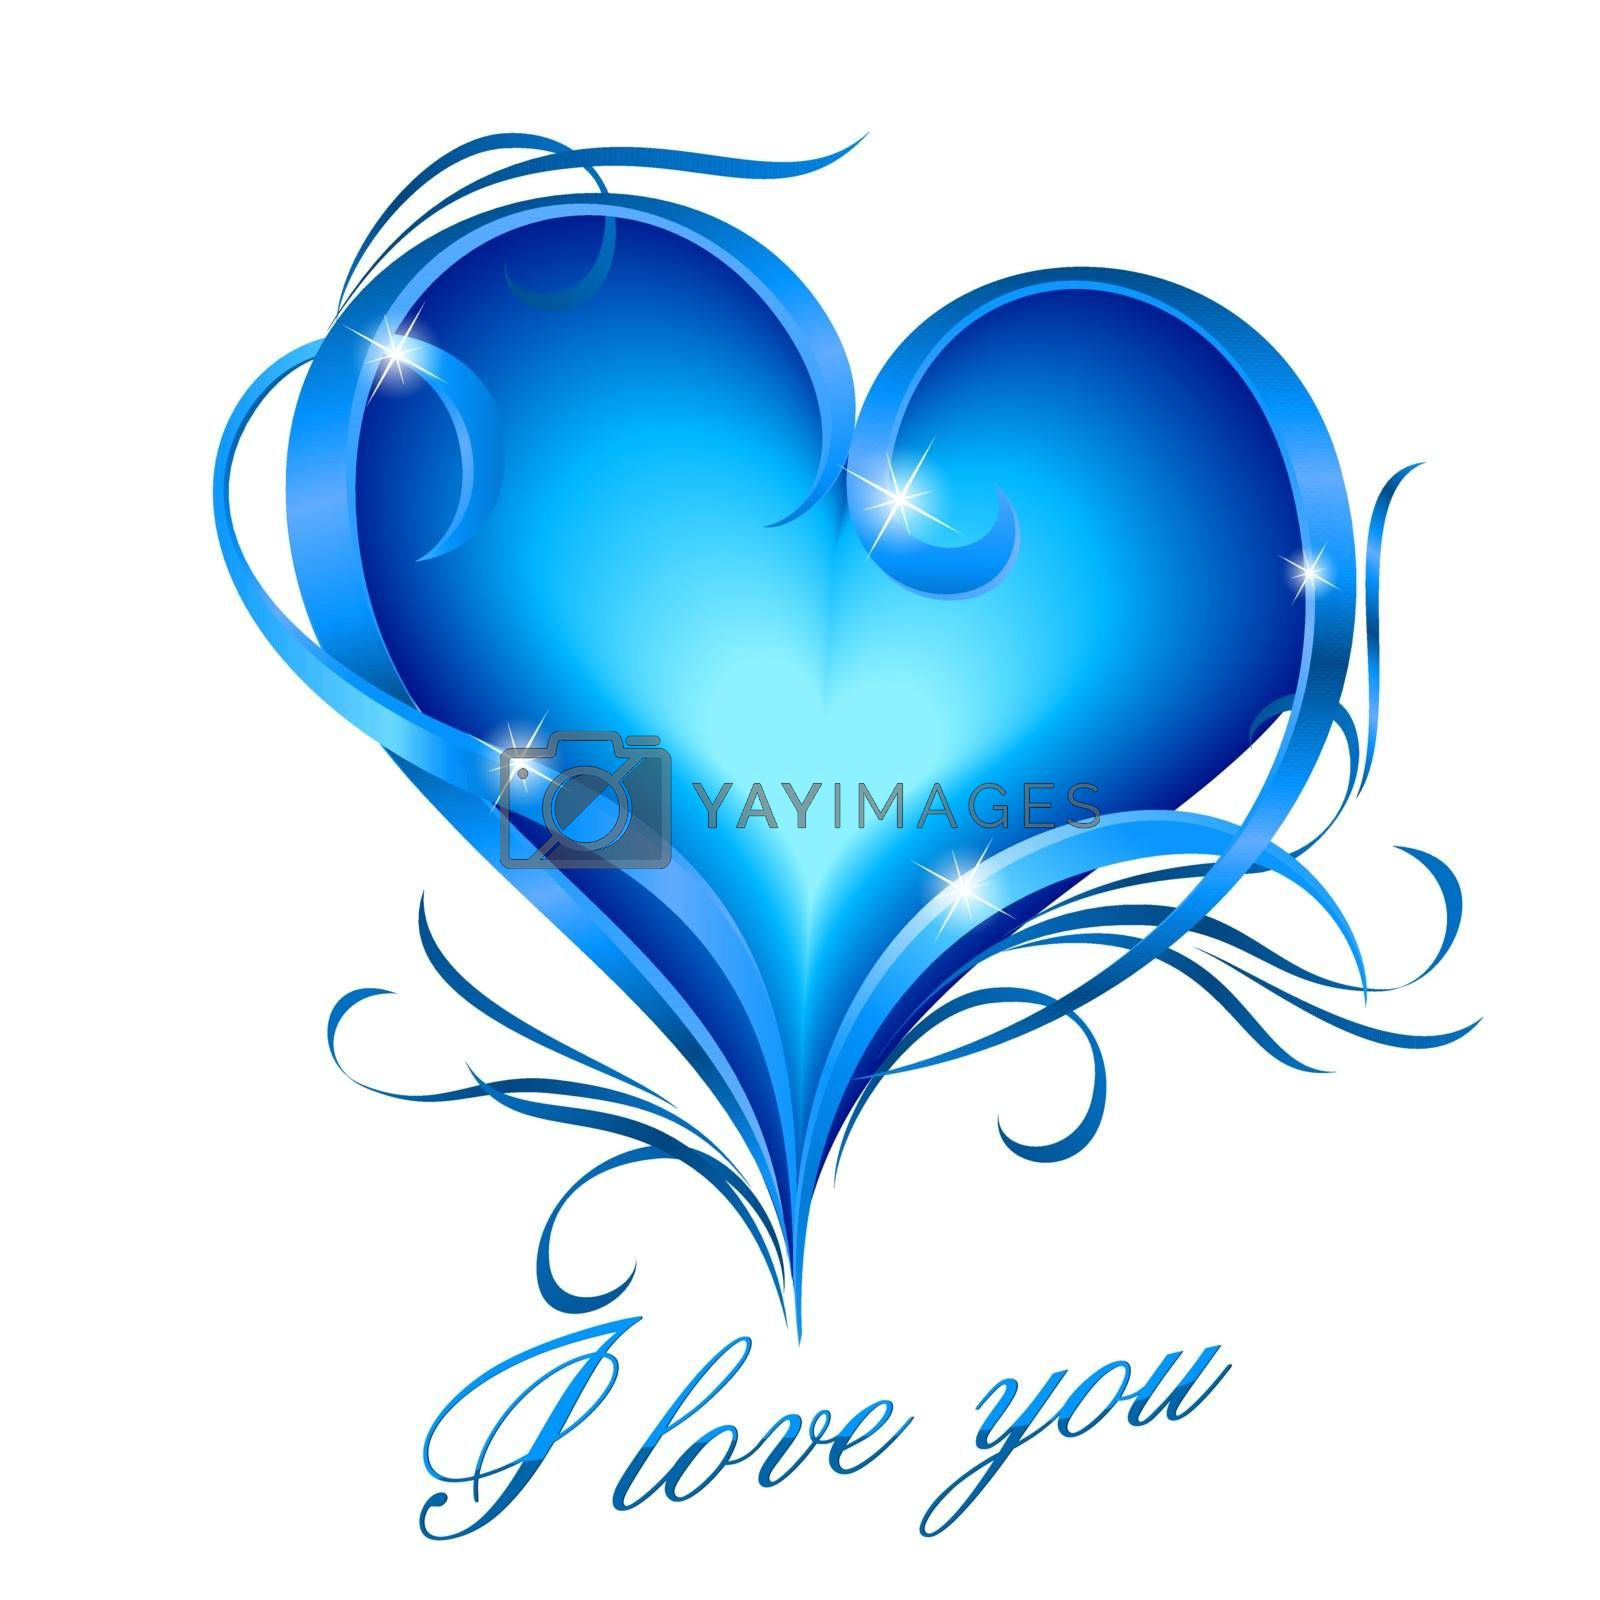 Blue heart with I love you text by dvarg